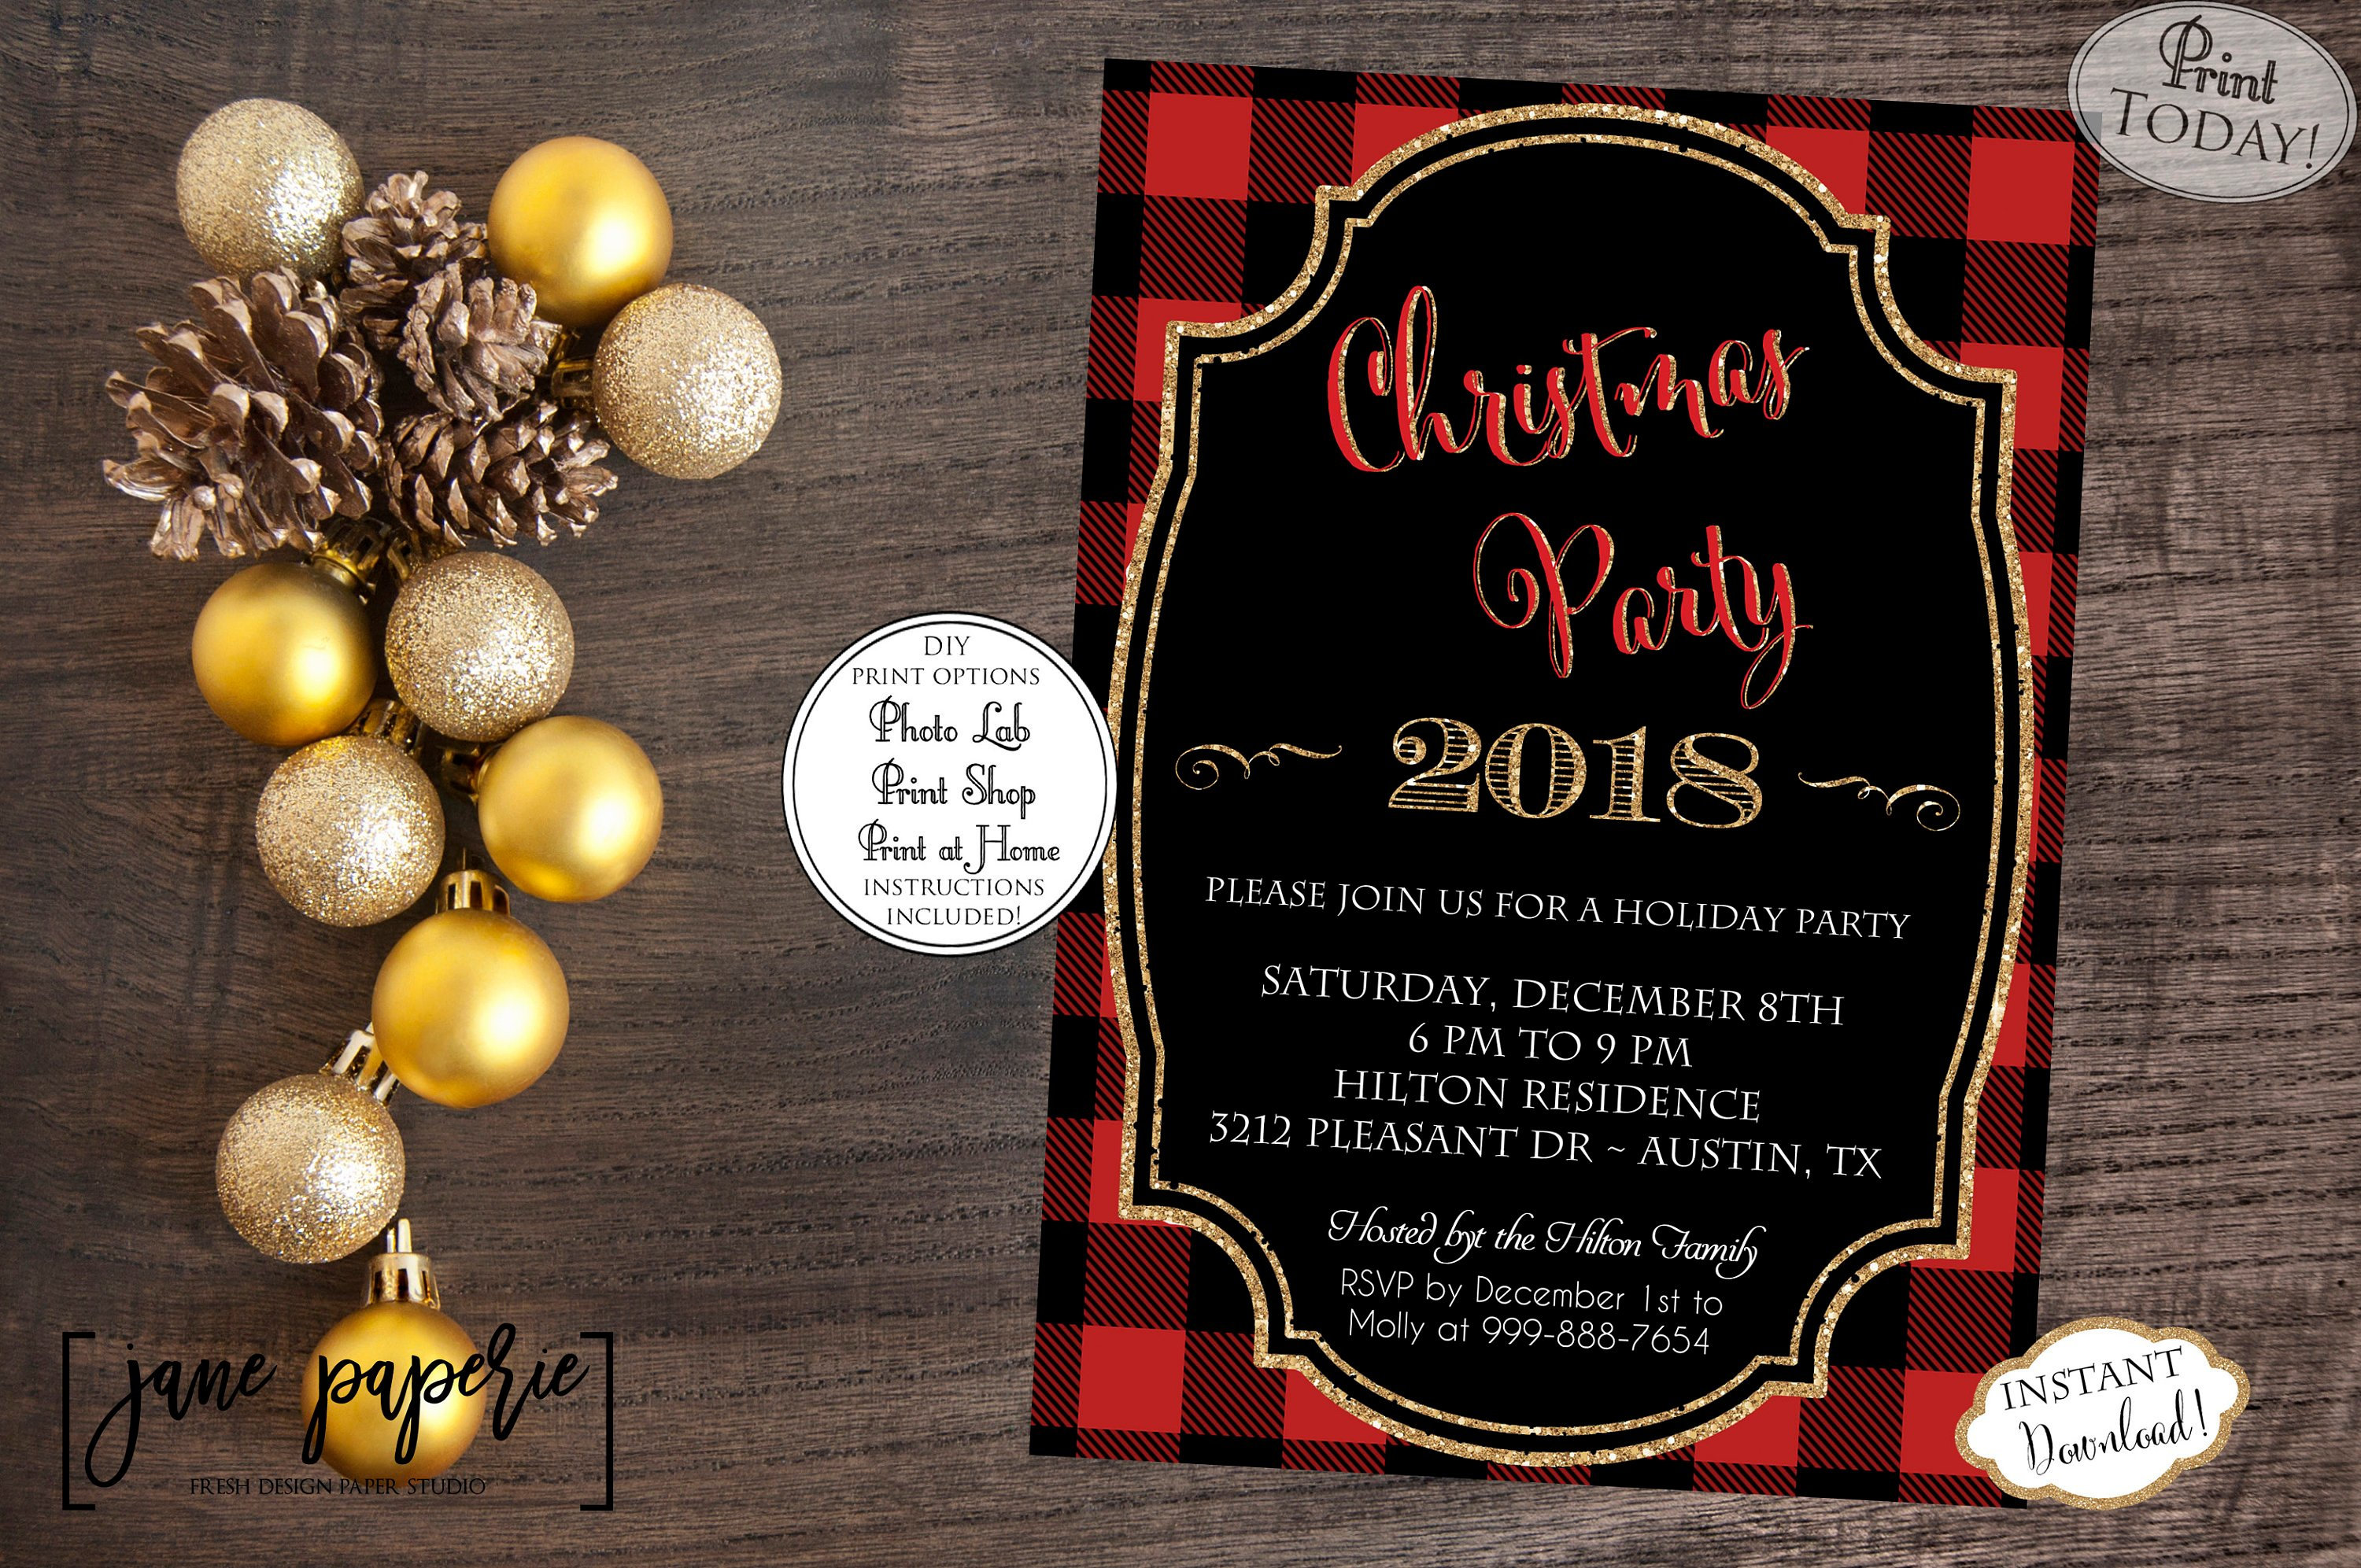 INSTANT DOWNLOAD Buffalo Plaid Christmas Party Invitation